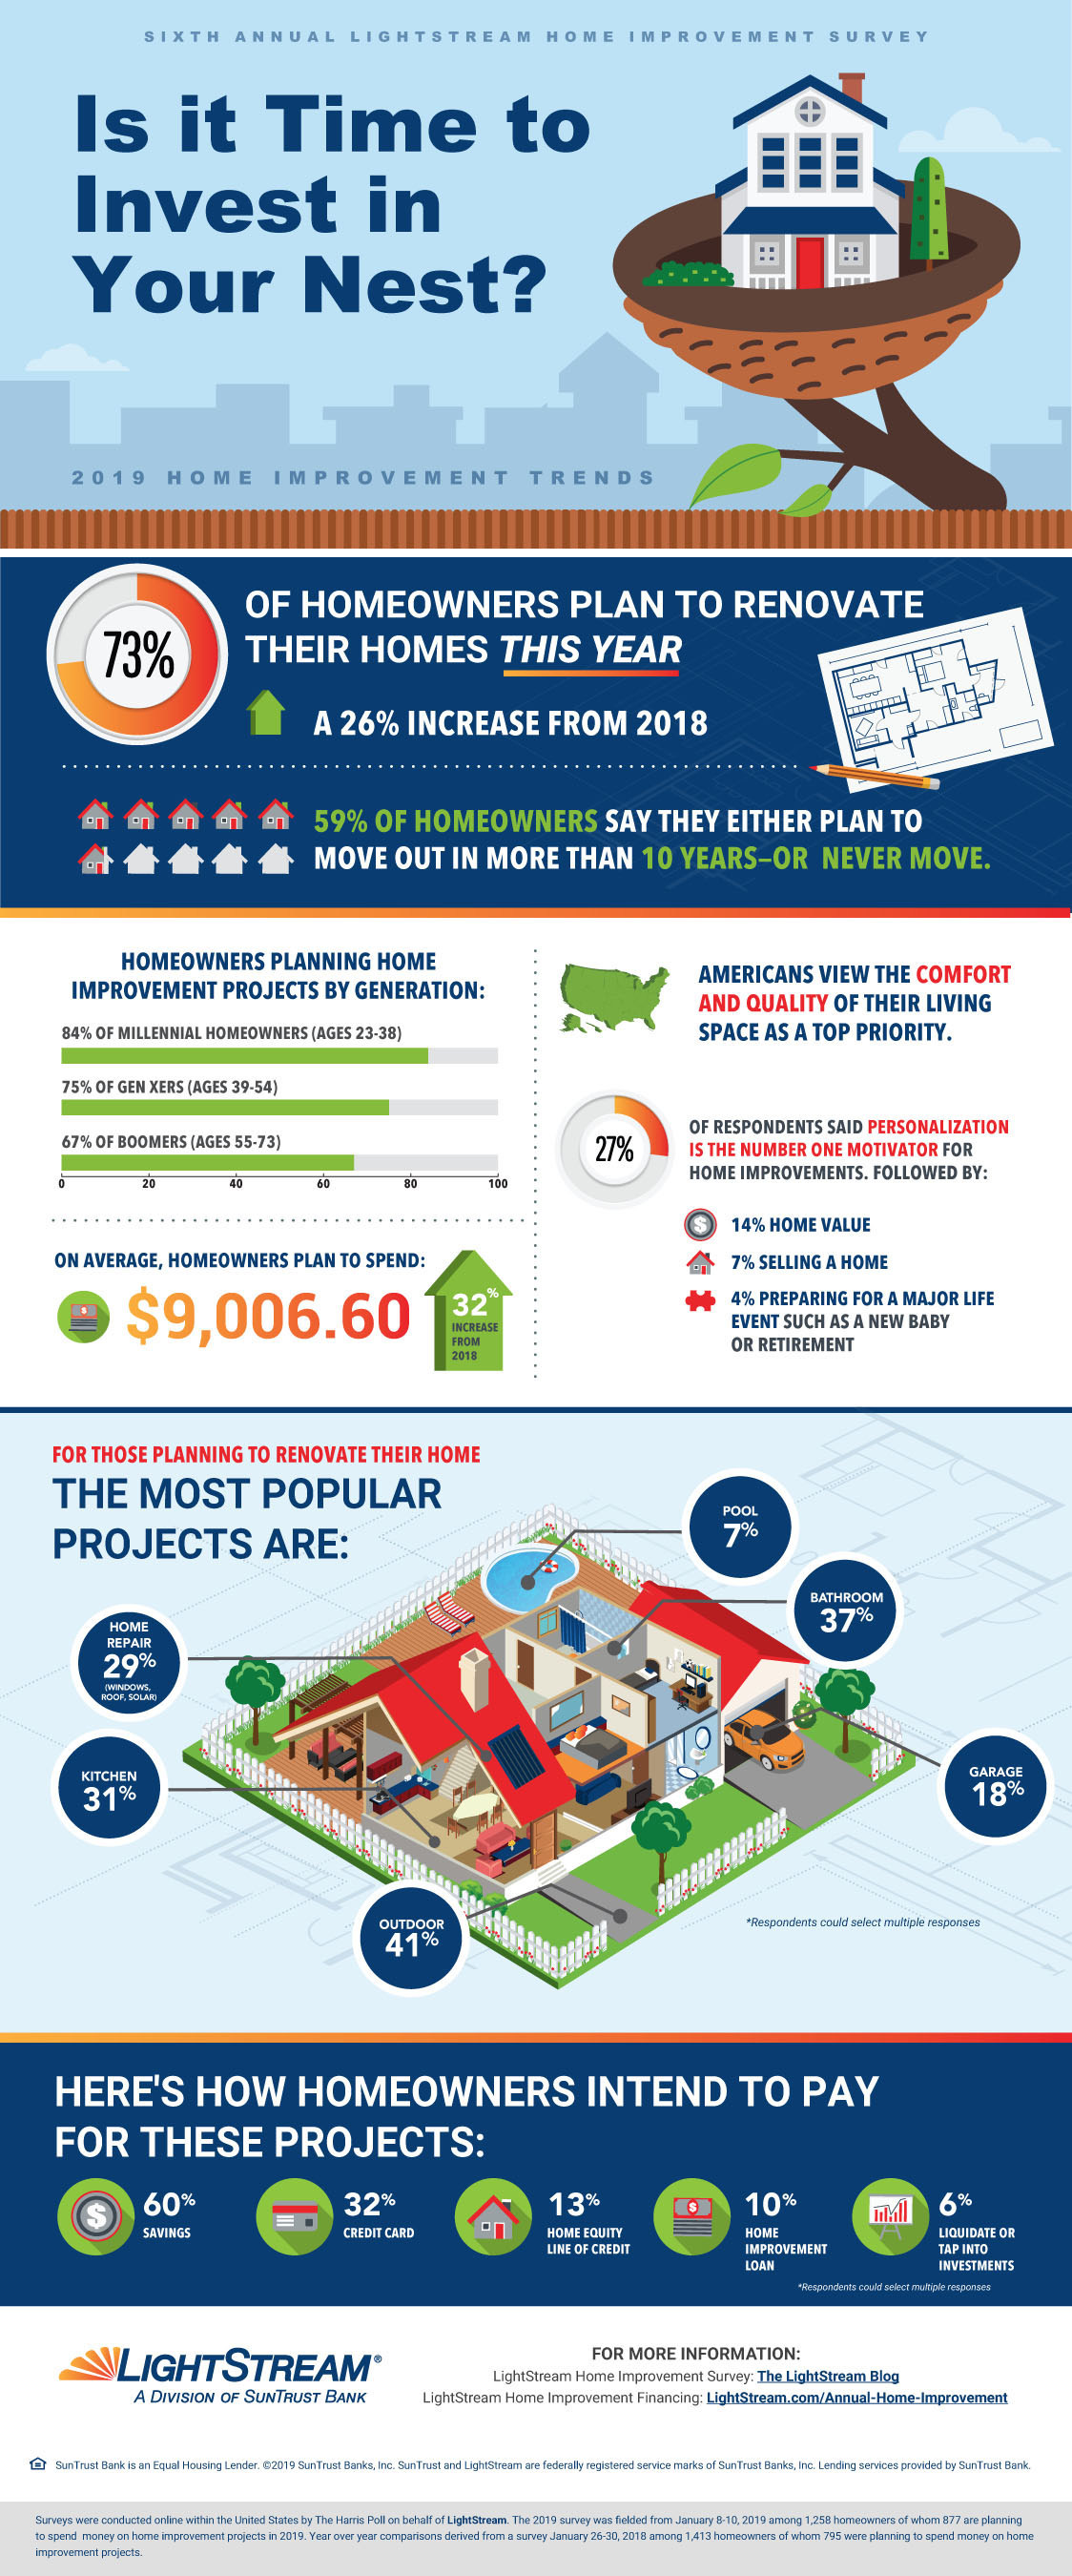 Nearly three in four (73%) homeowners surveyed plan to make home improvements this year, a 26% increase from 2018, according to the sixth annual LightStream Home Improvement Survey. Homeowners also plan to spend more on those renovations – an average of about $9,000, the highest amount since the survey began in 2014.